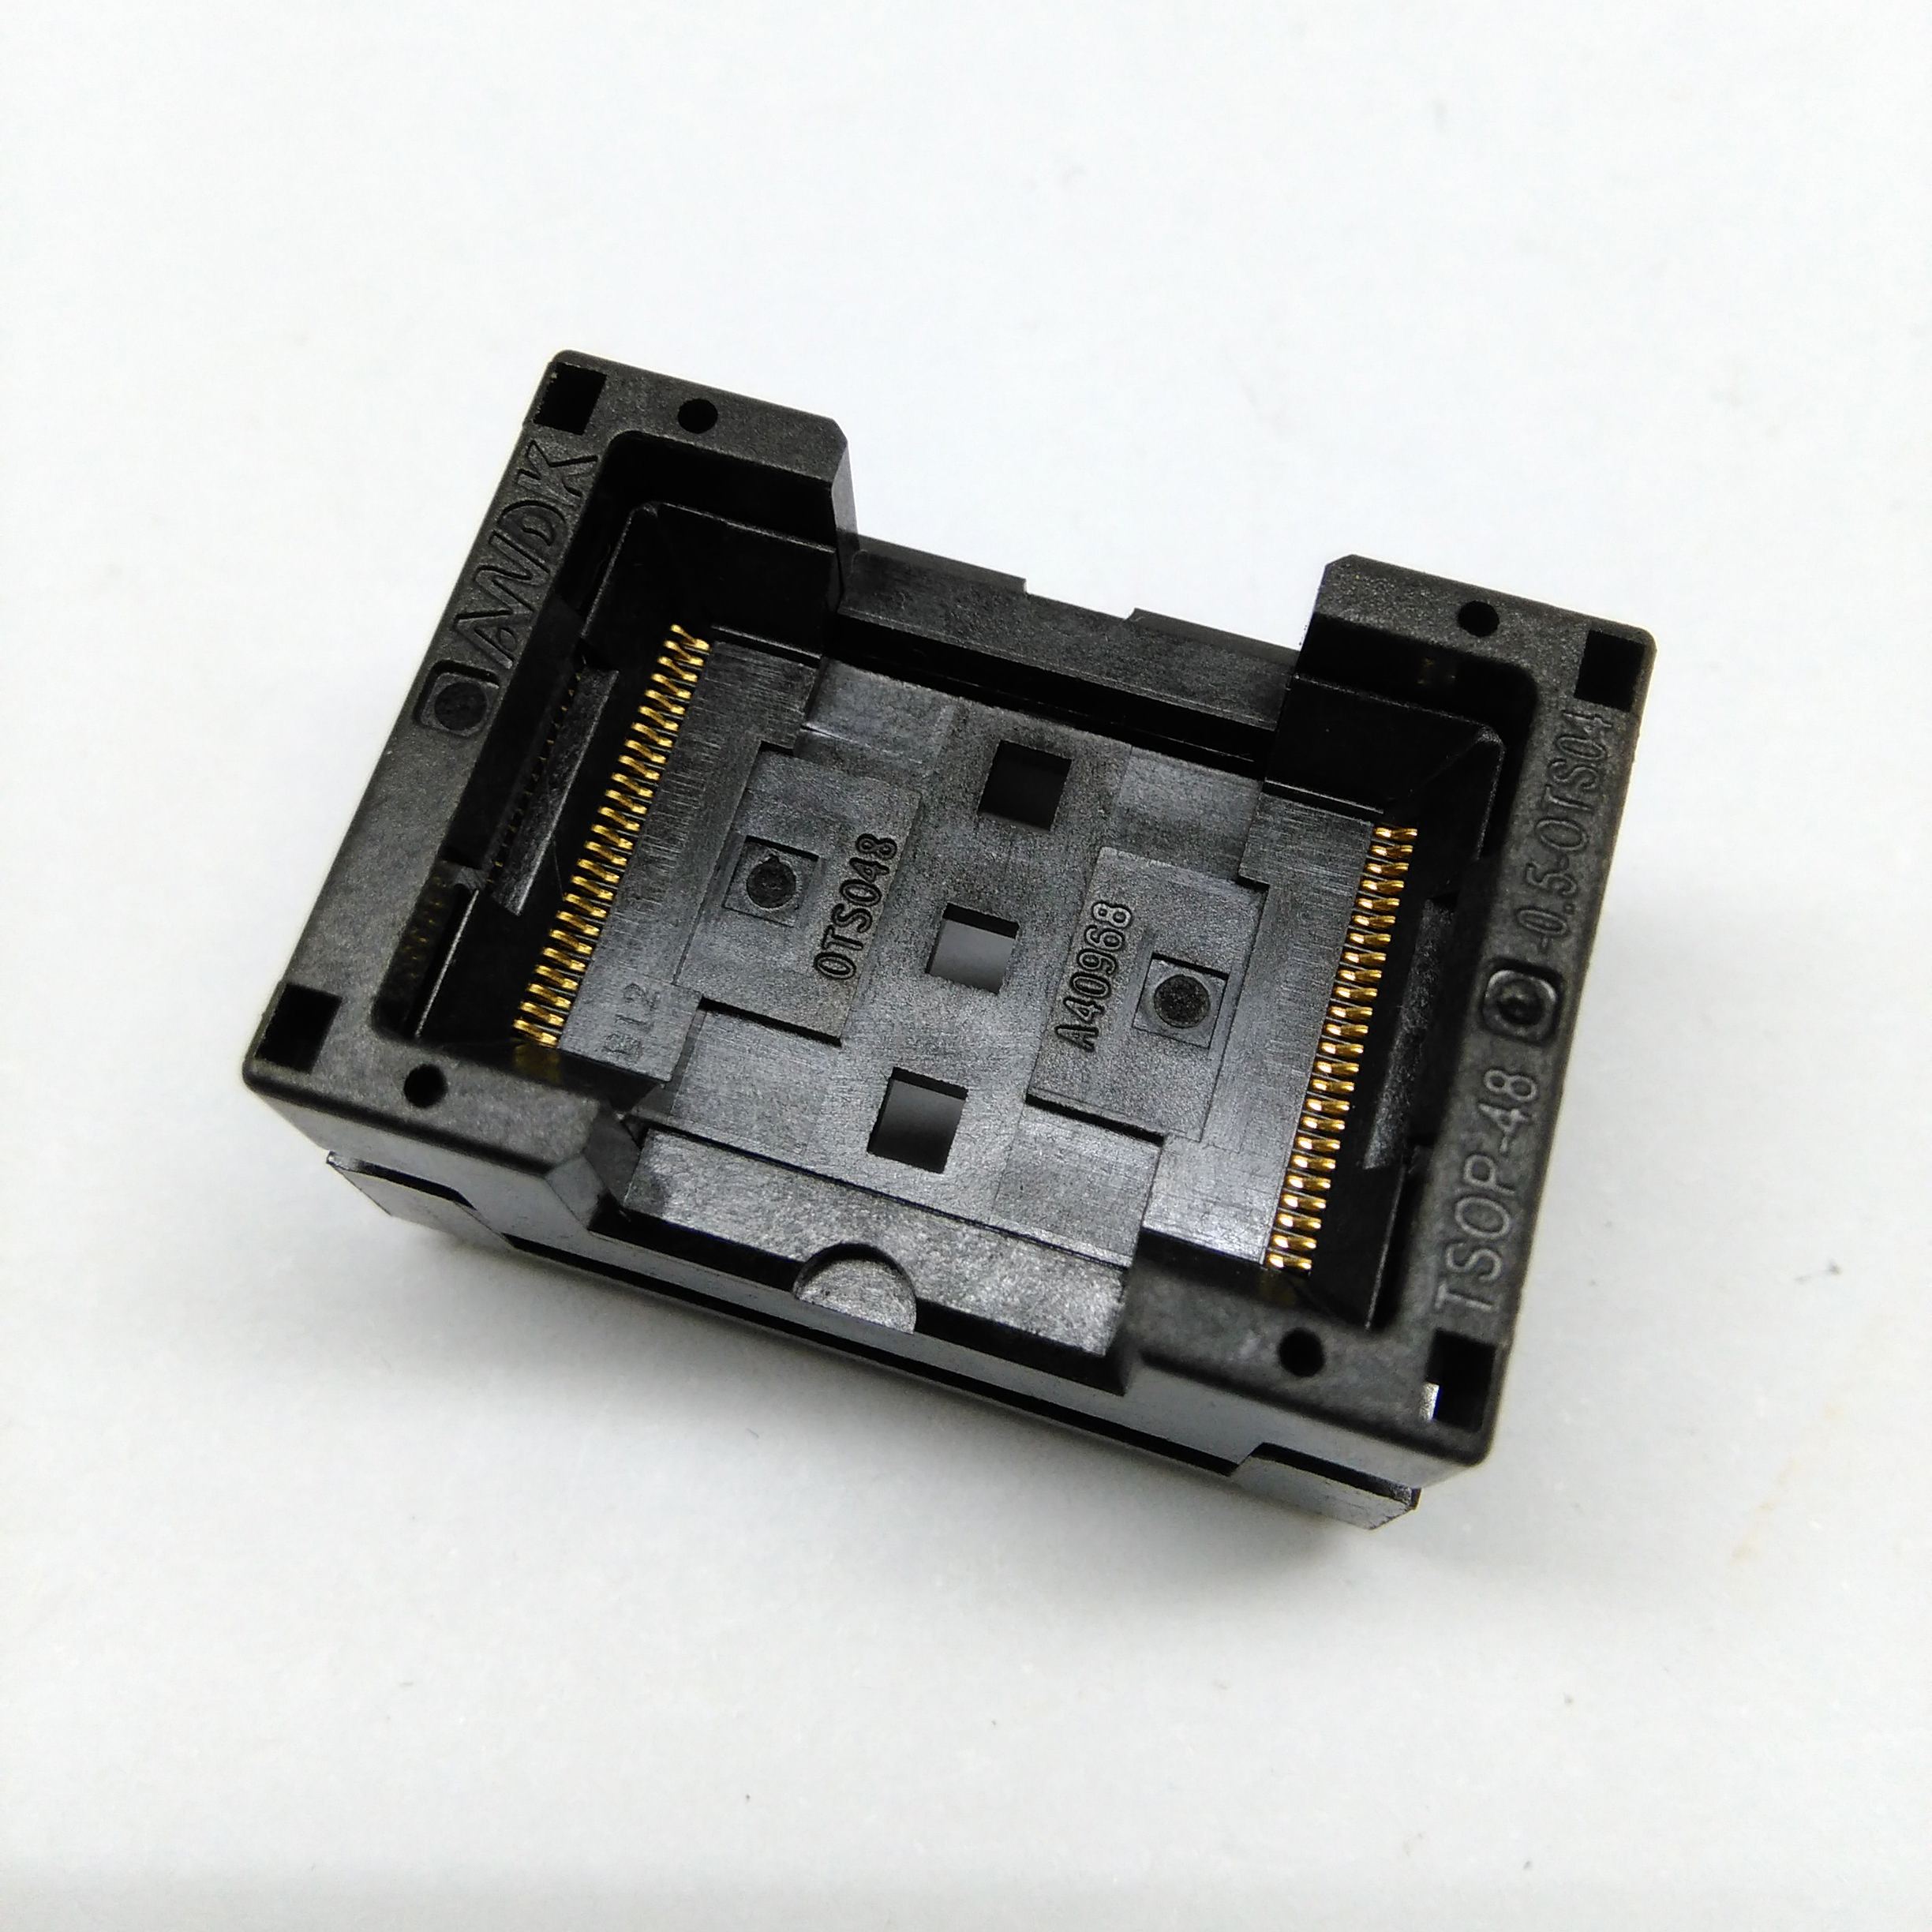 TSOP48-0.5 Open Top Broad Body Burn in Socket L85 Size14.2*18.4 IC Test Socket Flash Adapter Conversion Block